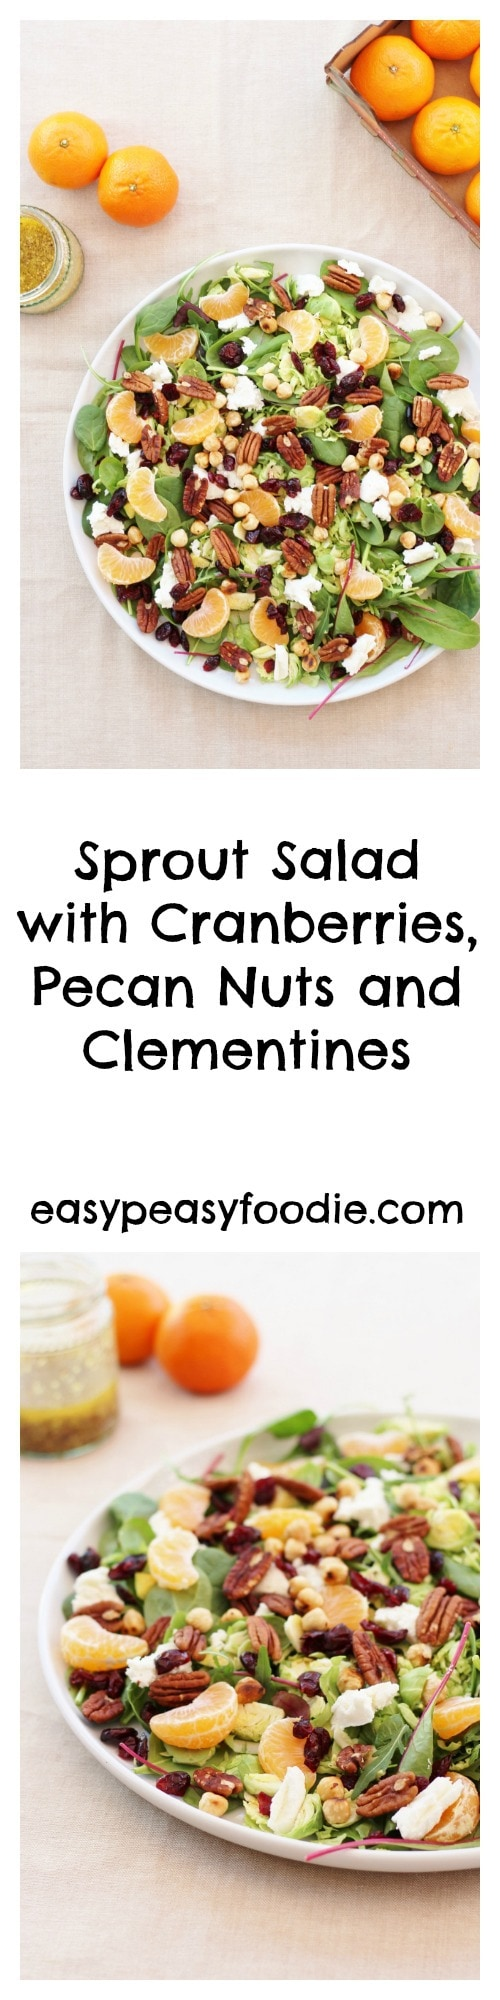 Sprout Salad with Cranberries, Pecan nuts and Clementines - pinnable image for Pinterest